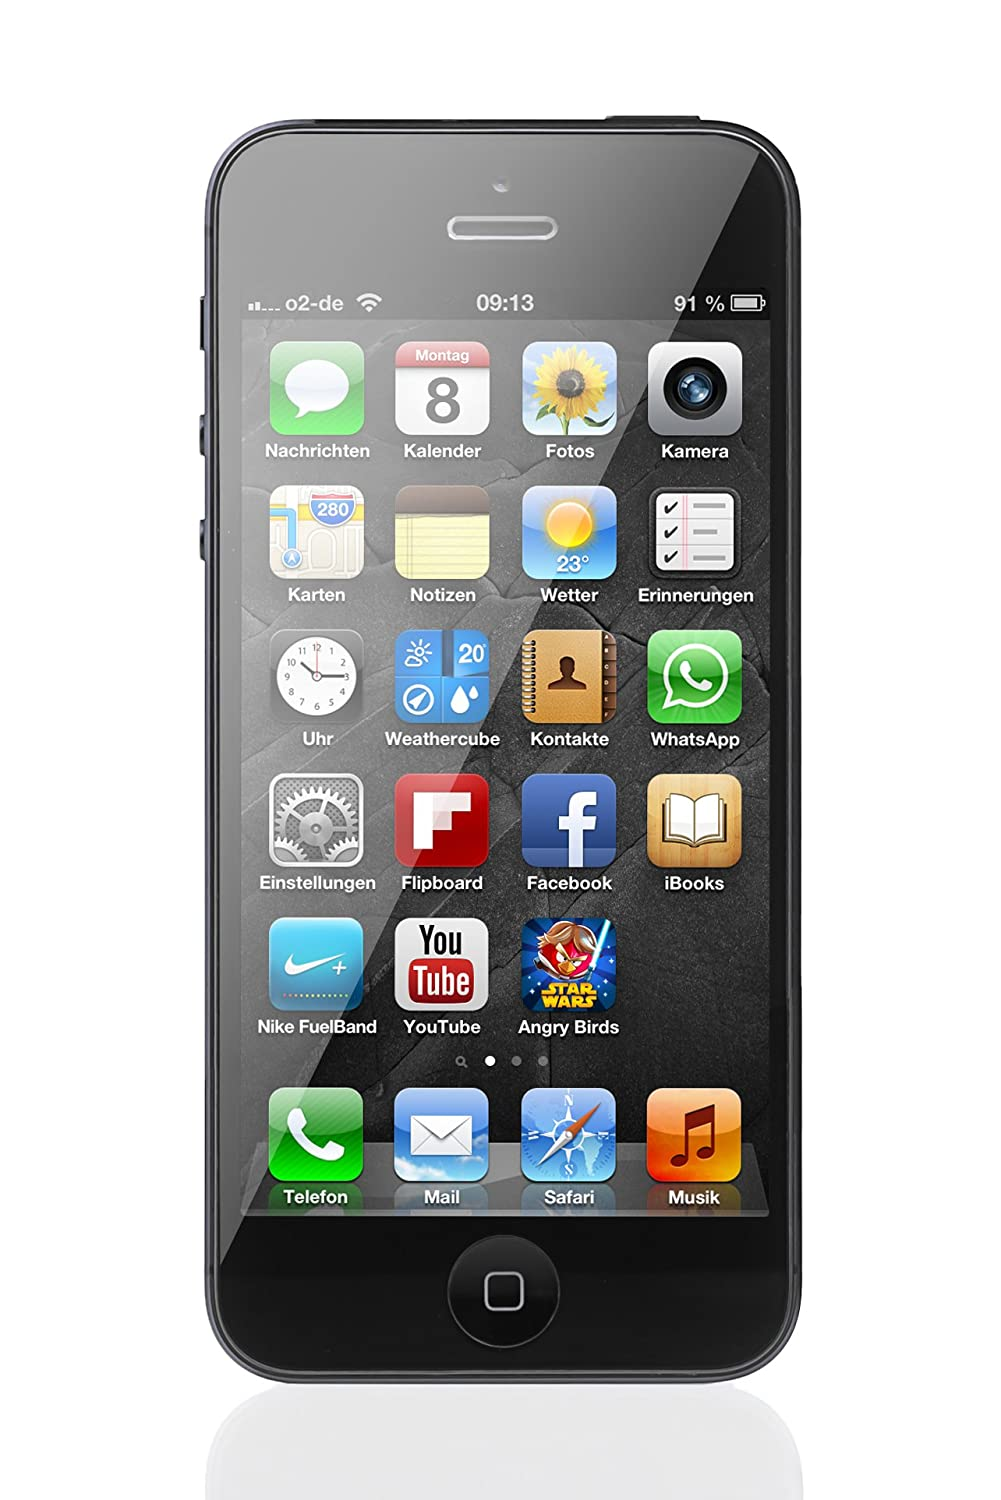 iphone 5 buy best smartphone to buy in 2013 categorized by price range 10961